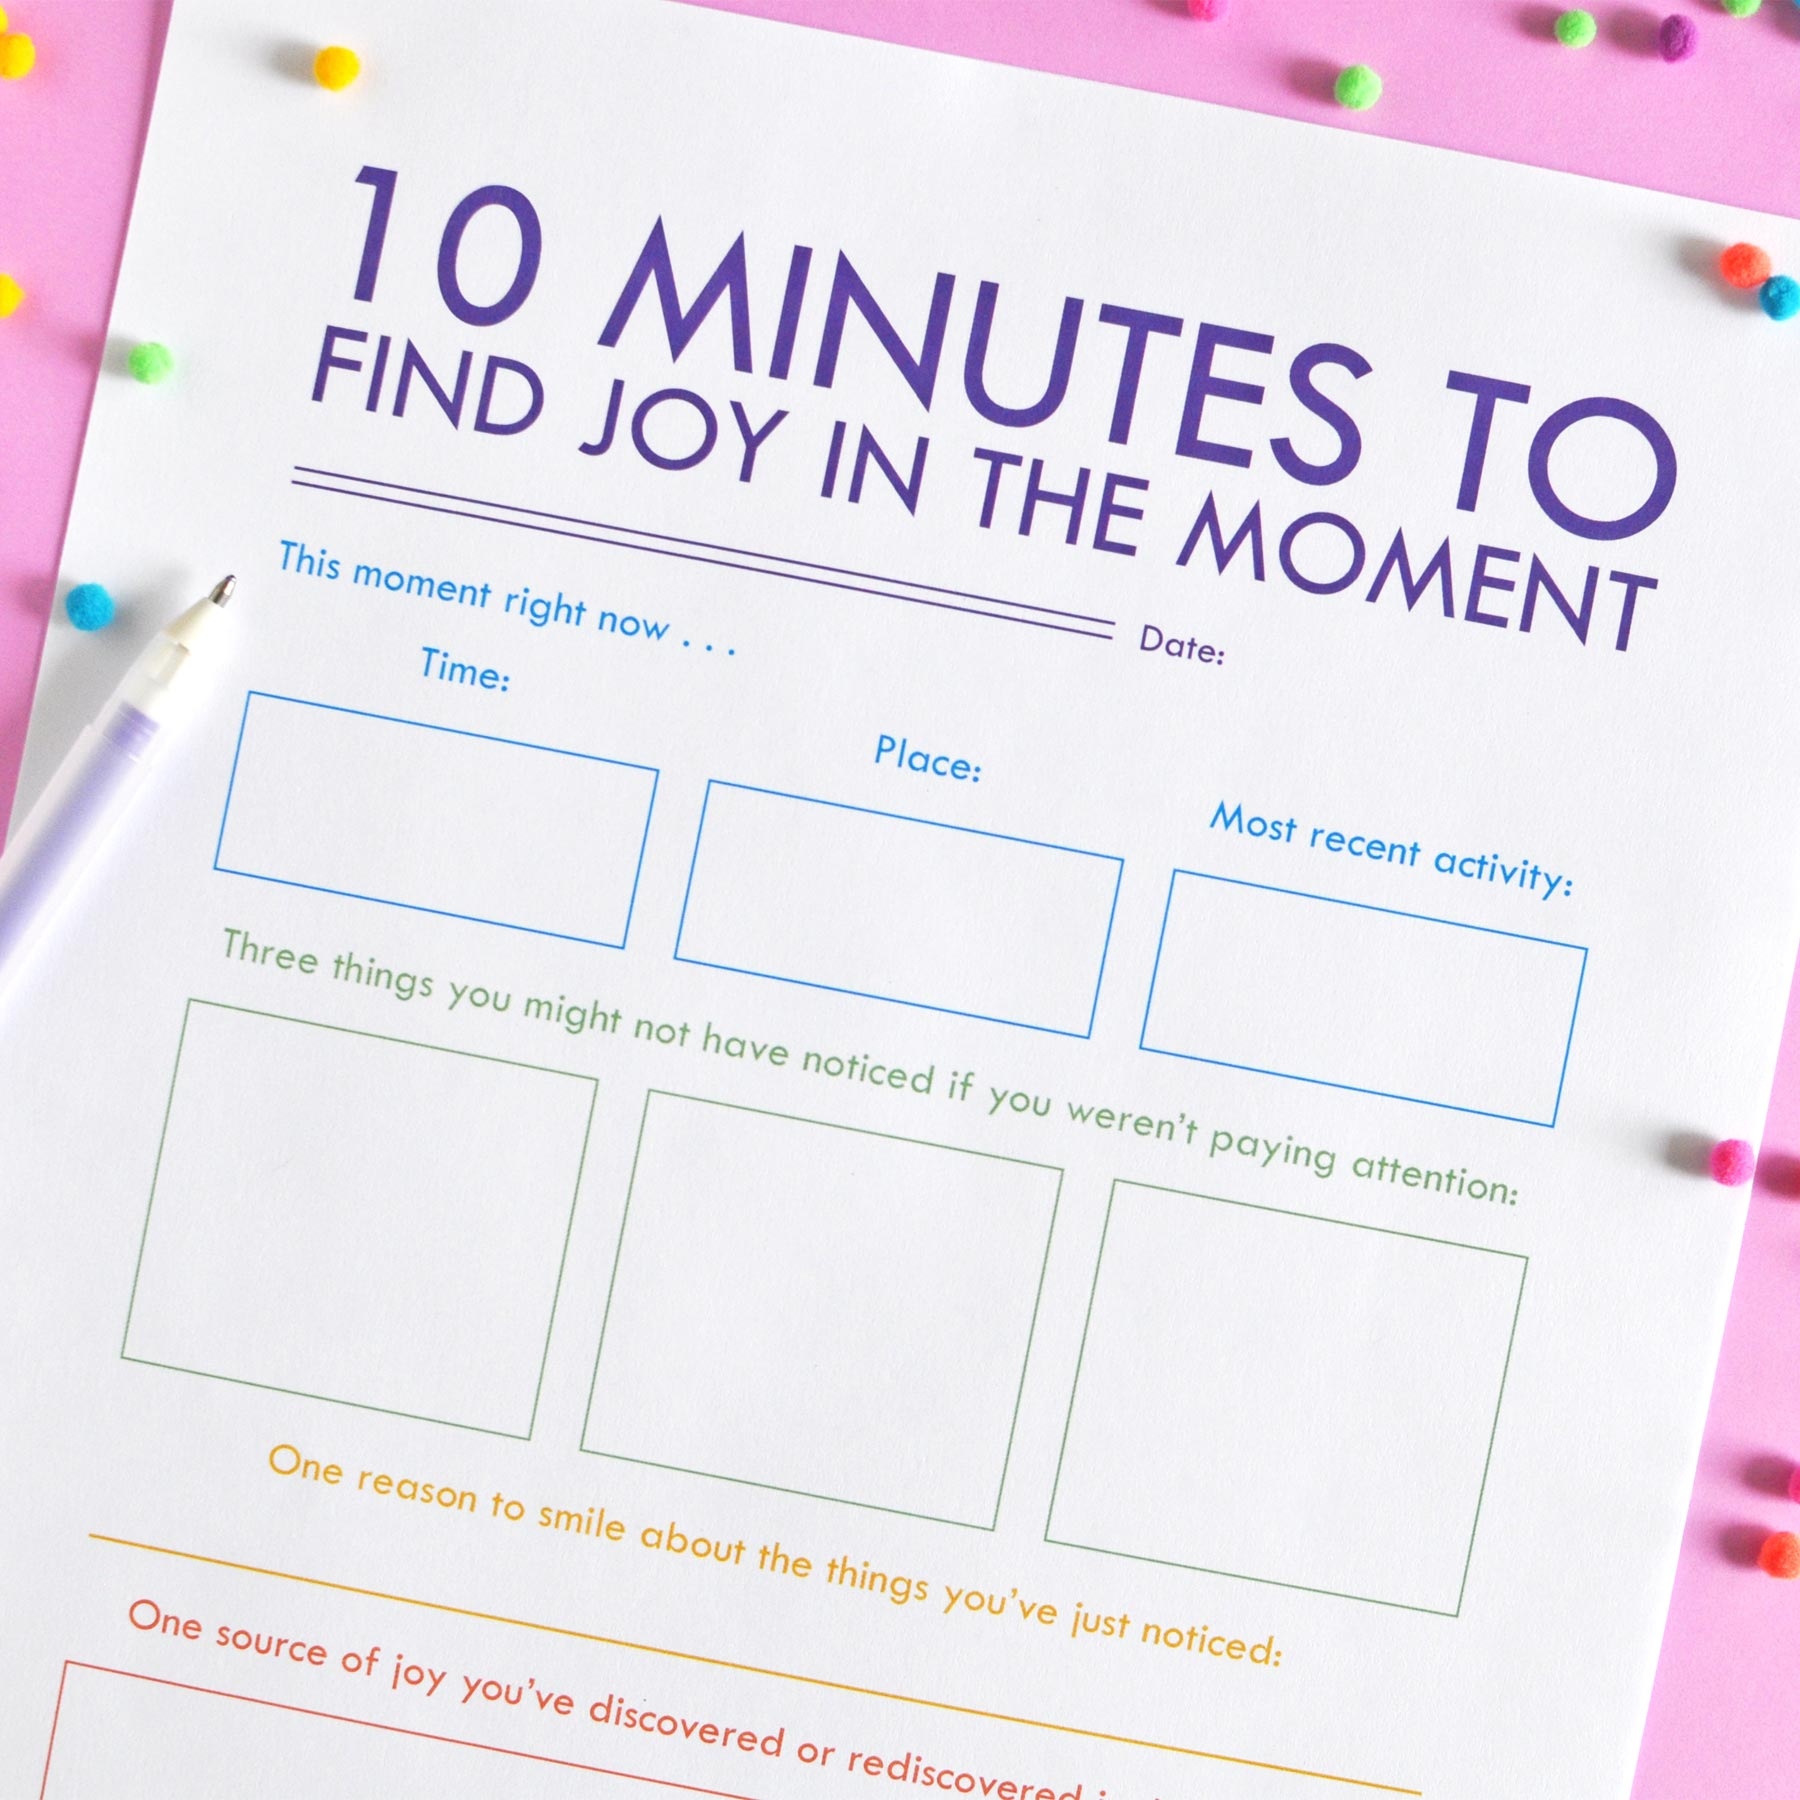 10-Minutes-to-Find-Joy-in-the-Moment-by-Christie-Zimmer.jpg